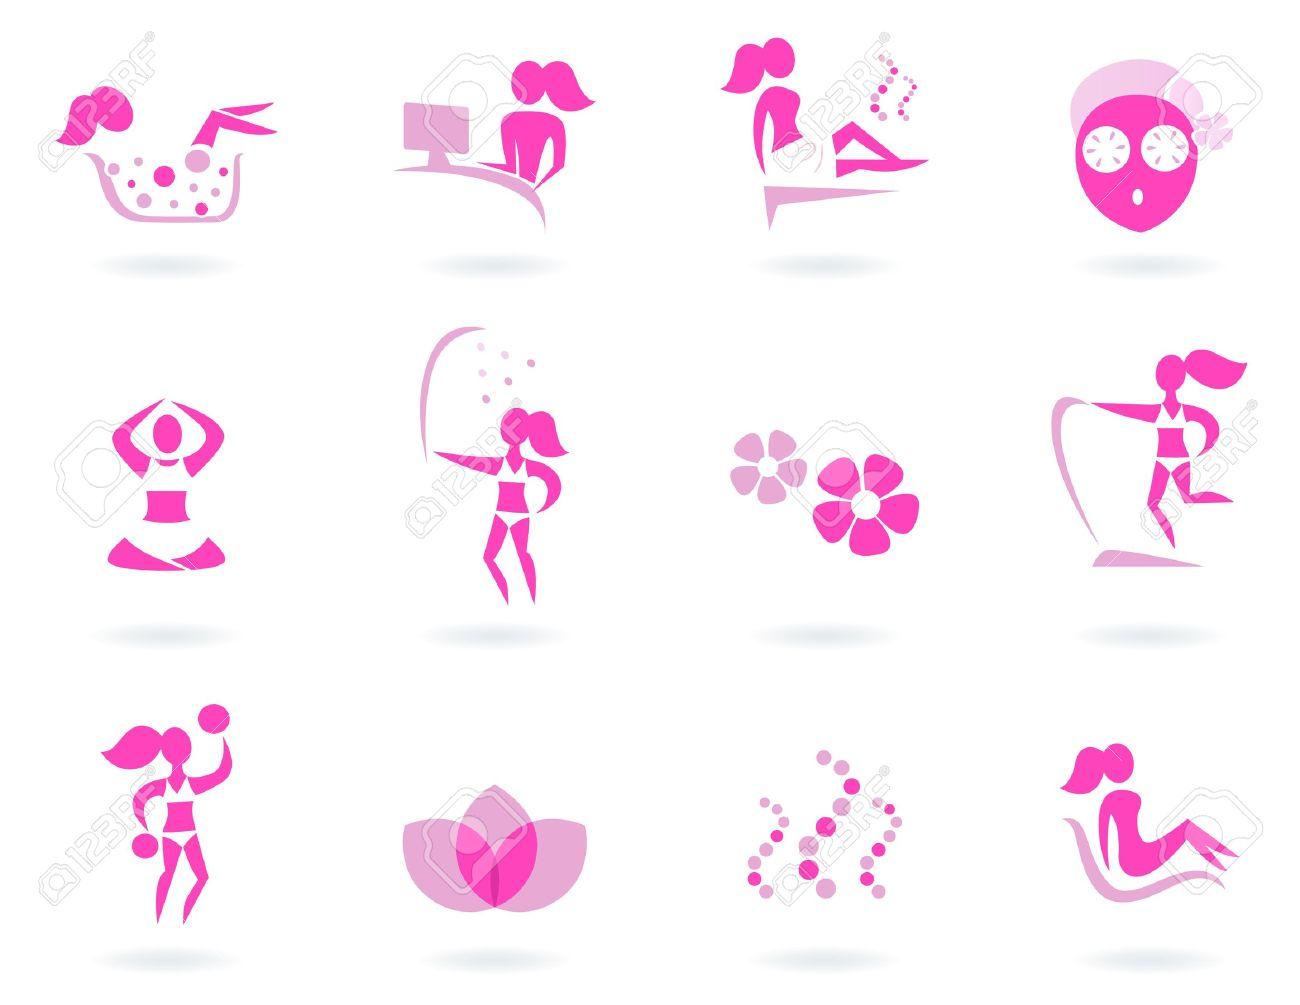 Vector collection of pink spa icons - pink and white. Stock Vector - 10661587